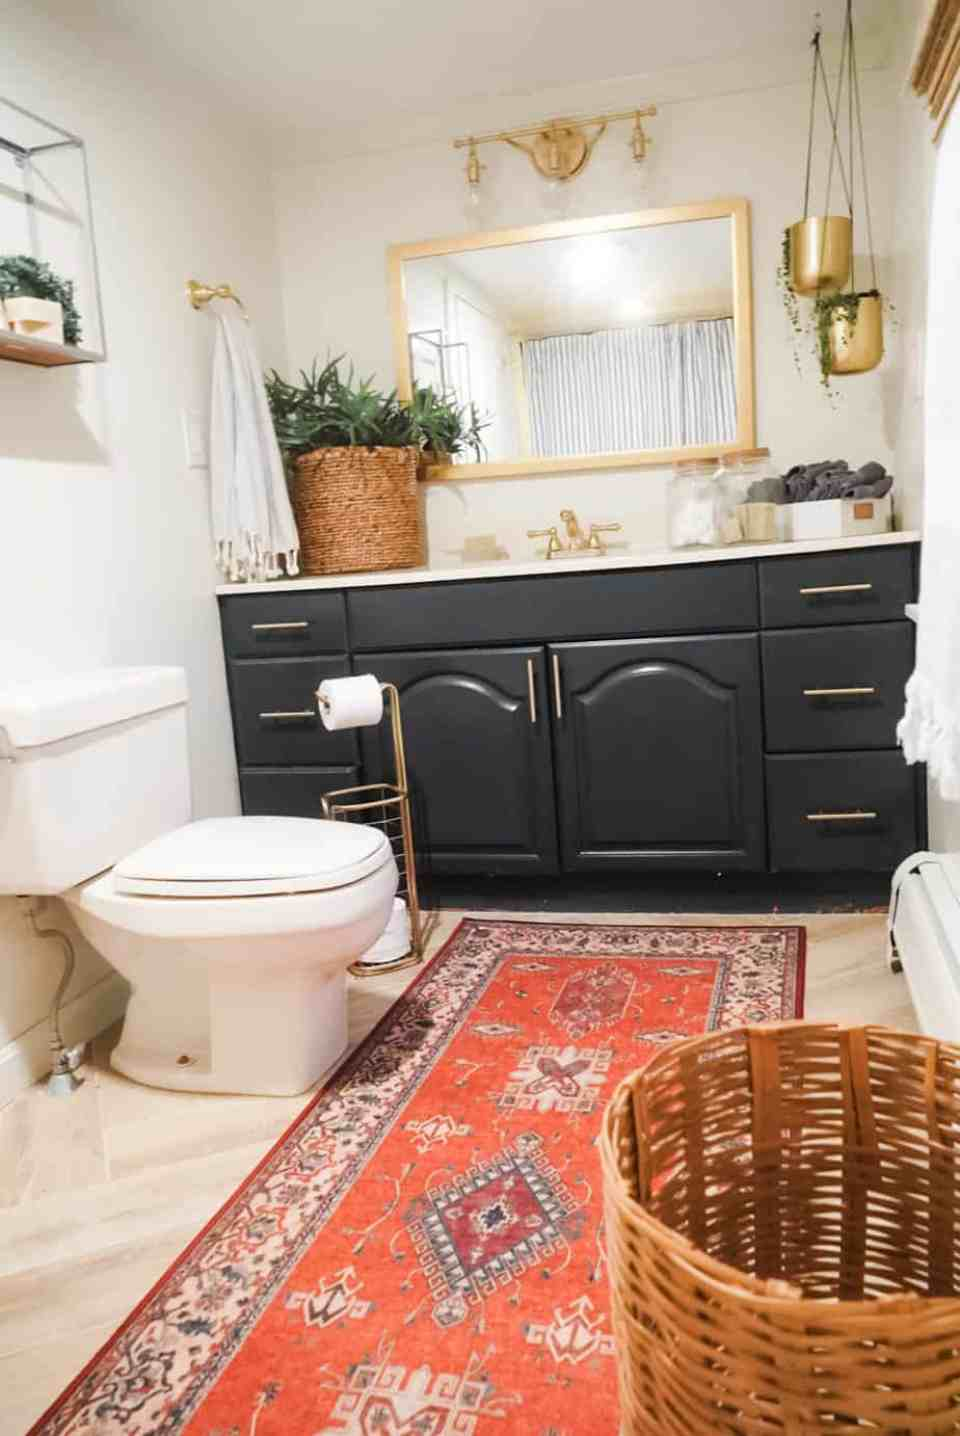 Red bathroom rug, blue vanity and gold bathroom fixtures